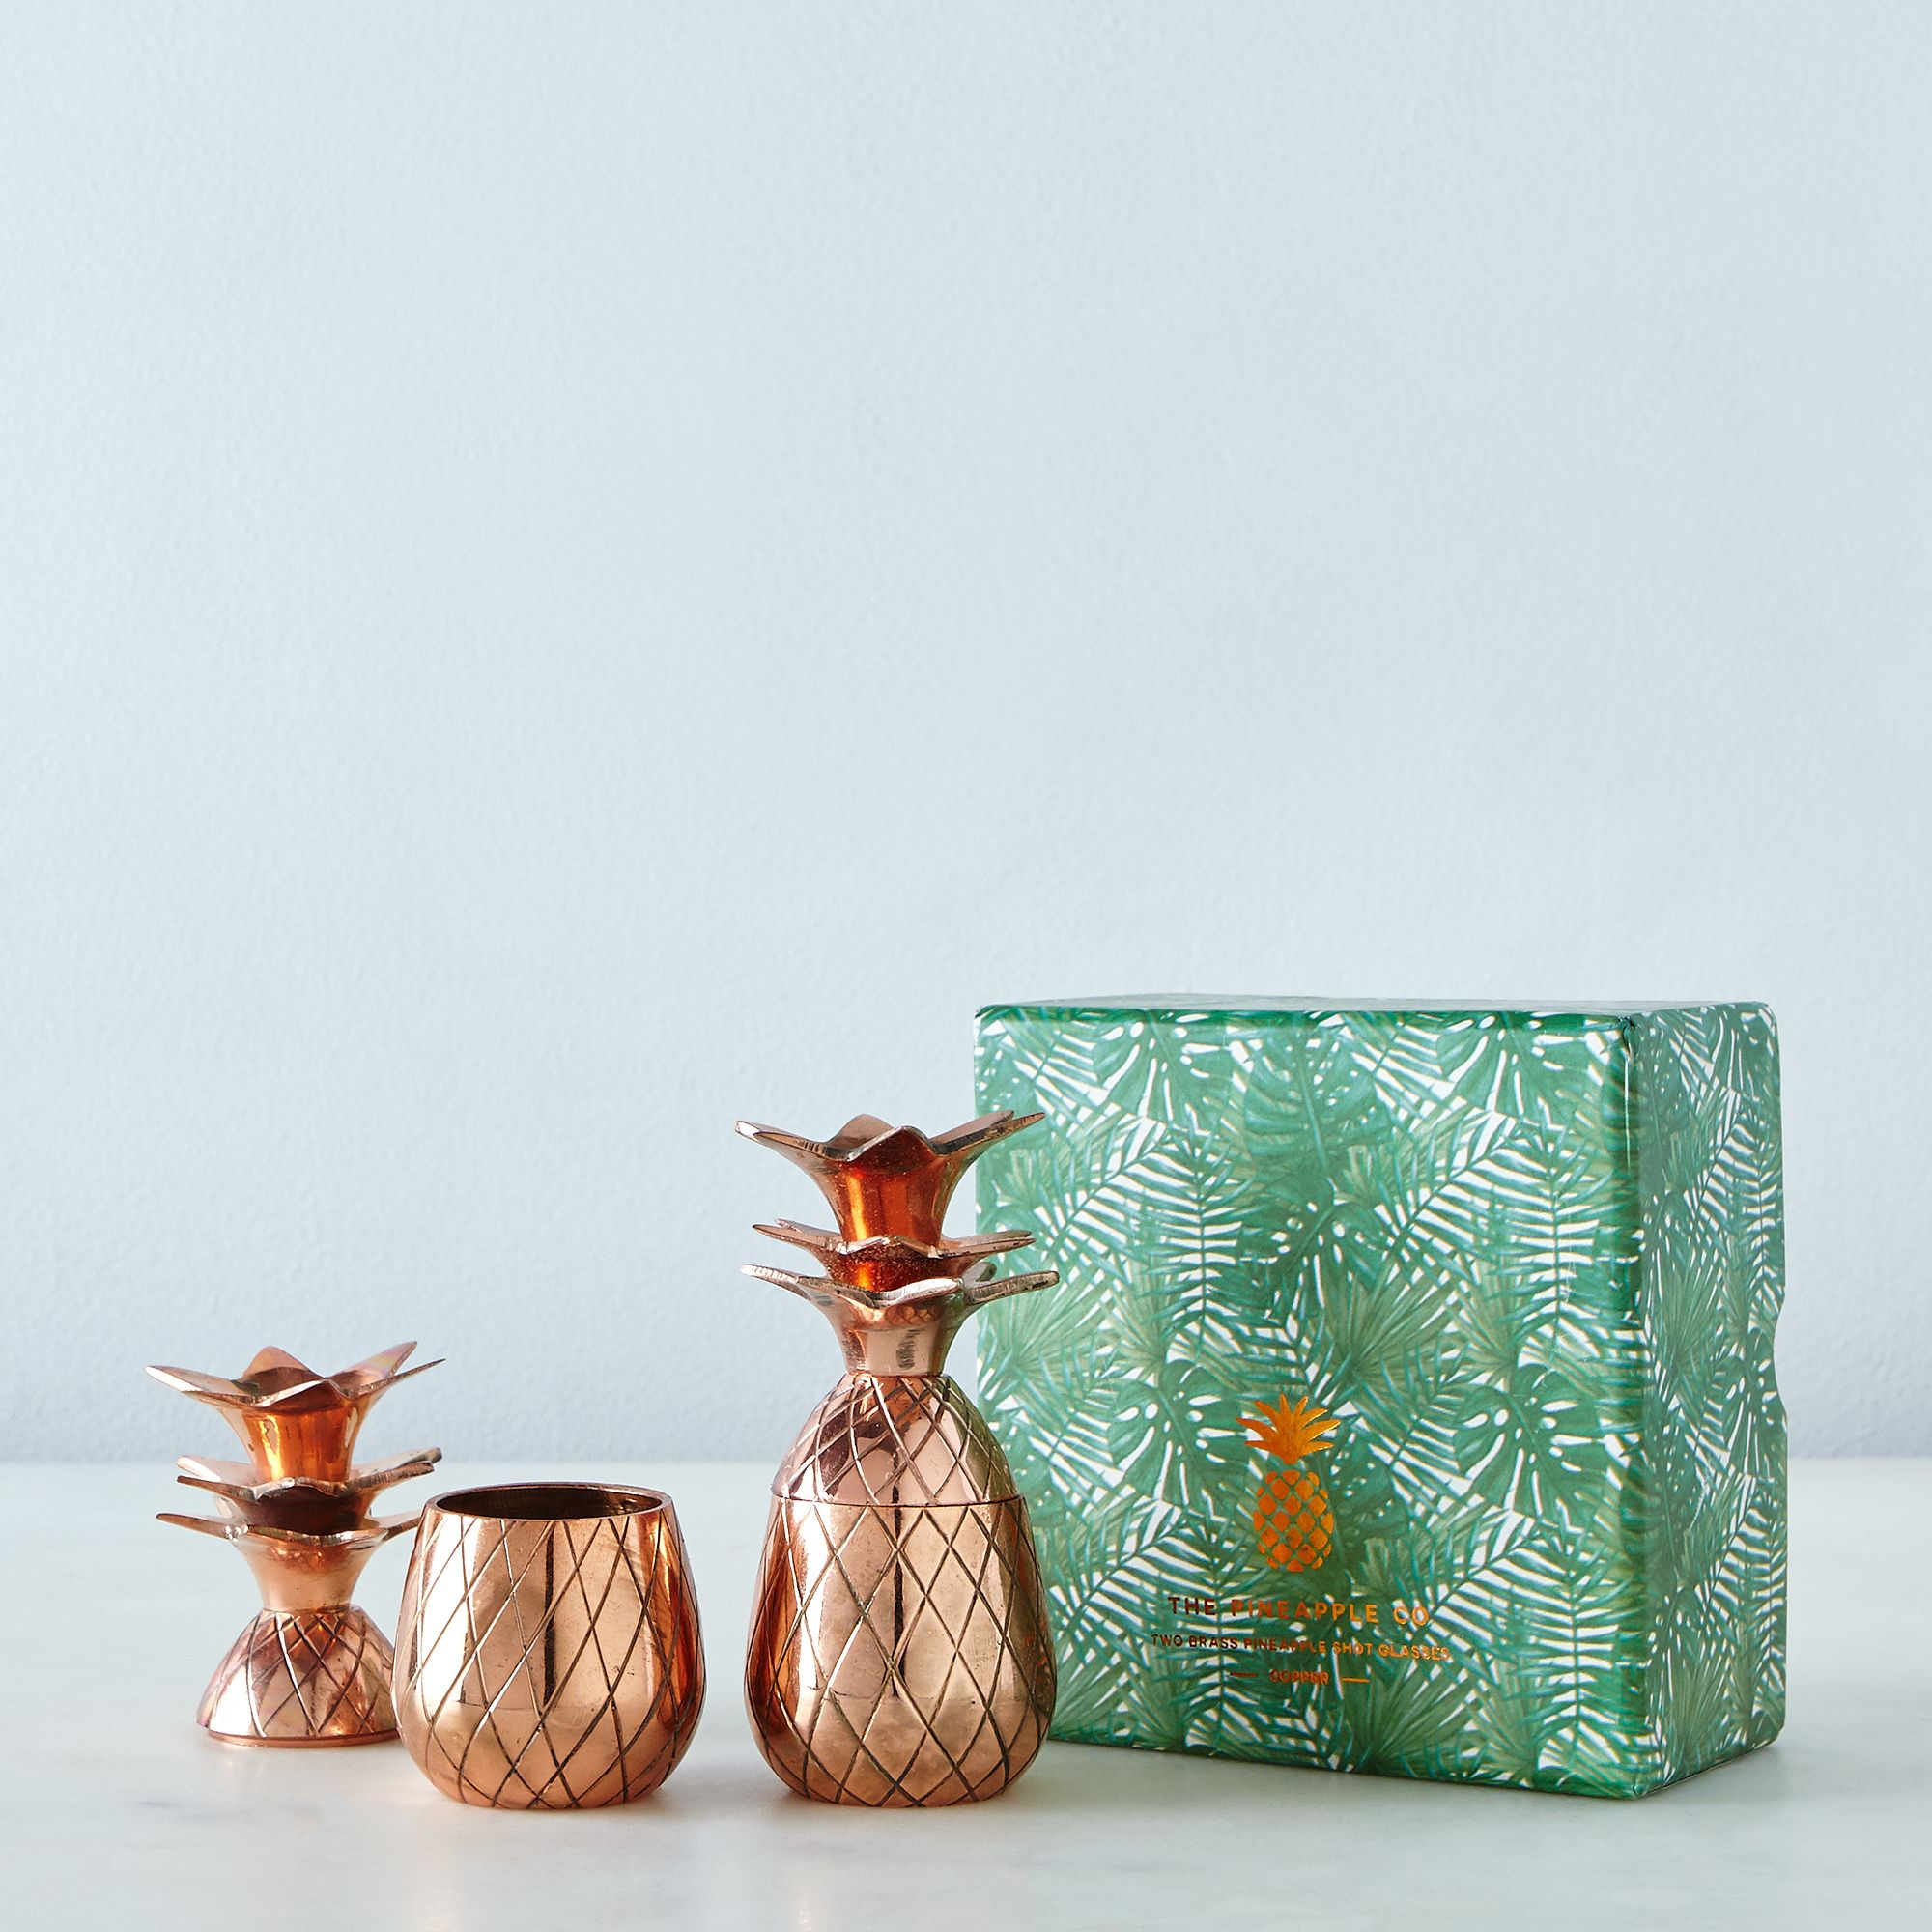 328b65ce-a0f9-11e5-a190-0ef7535729df--2015-1103_w-p-designs_pineapple-shot-glass_set-of-2_copper_silo_rocky-luten_030